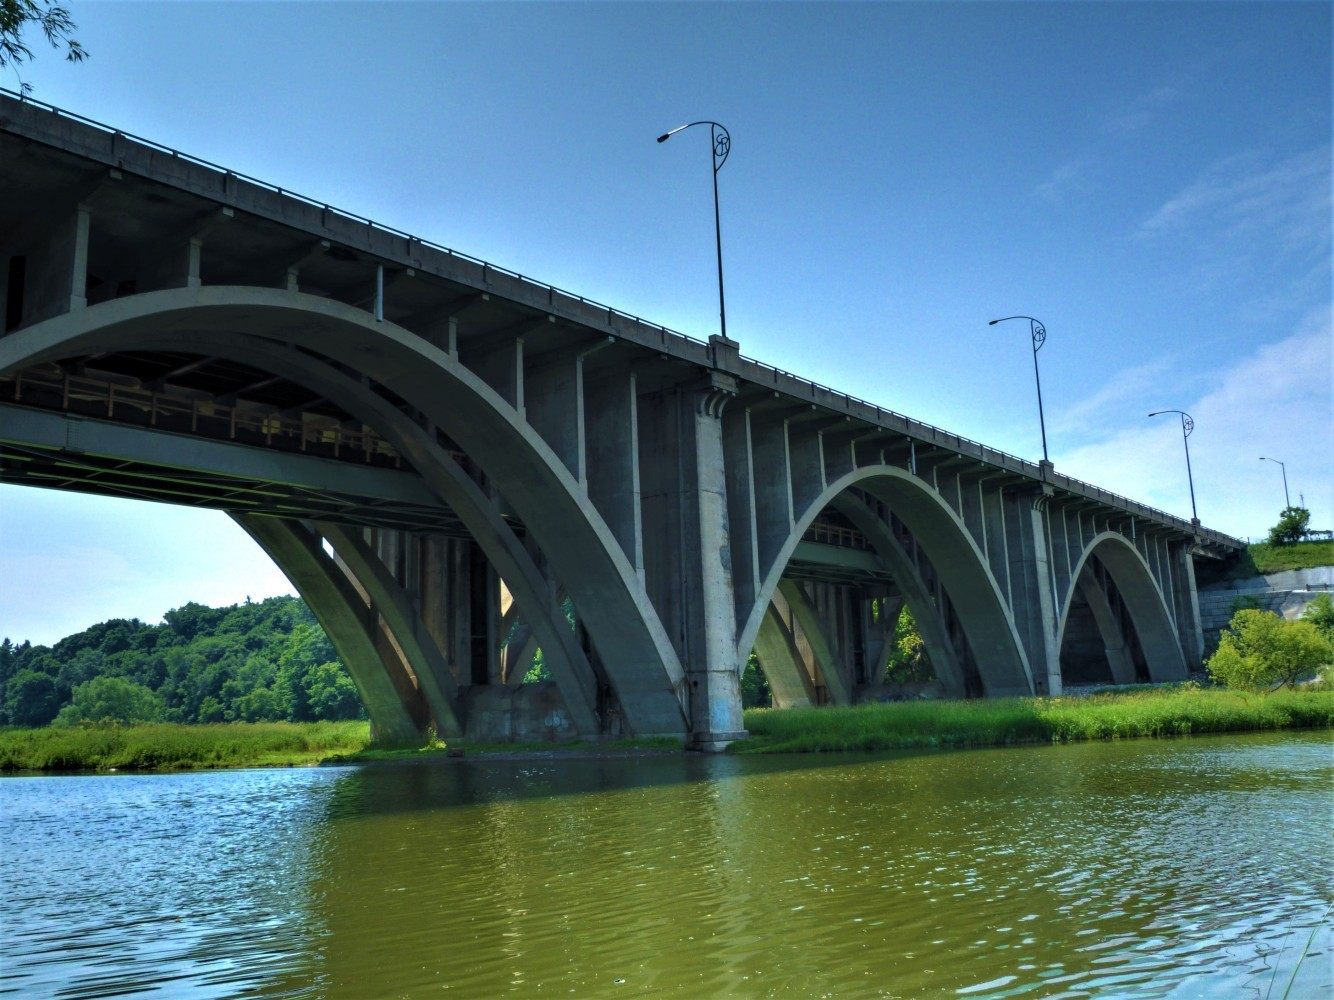 Province pulls u-turn on QEW Credit River bridge, opts to rehabilitate the heritage site